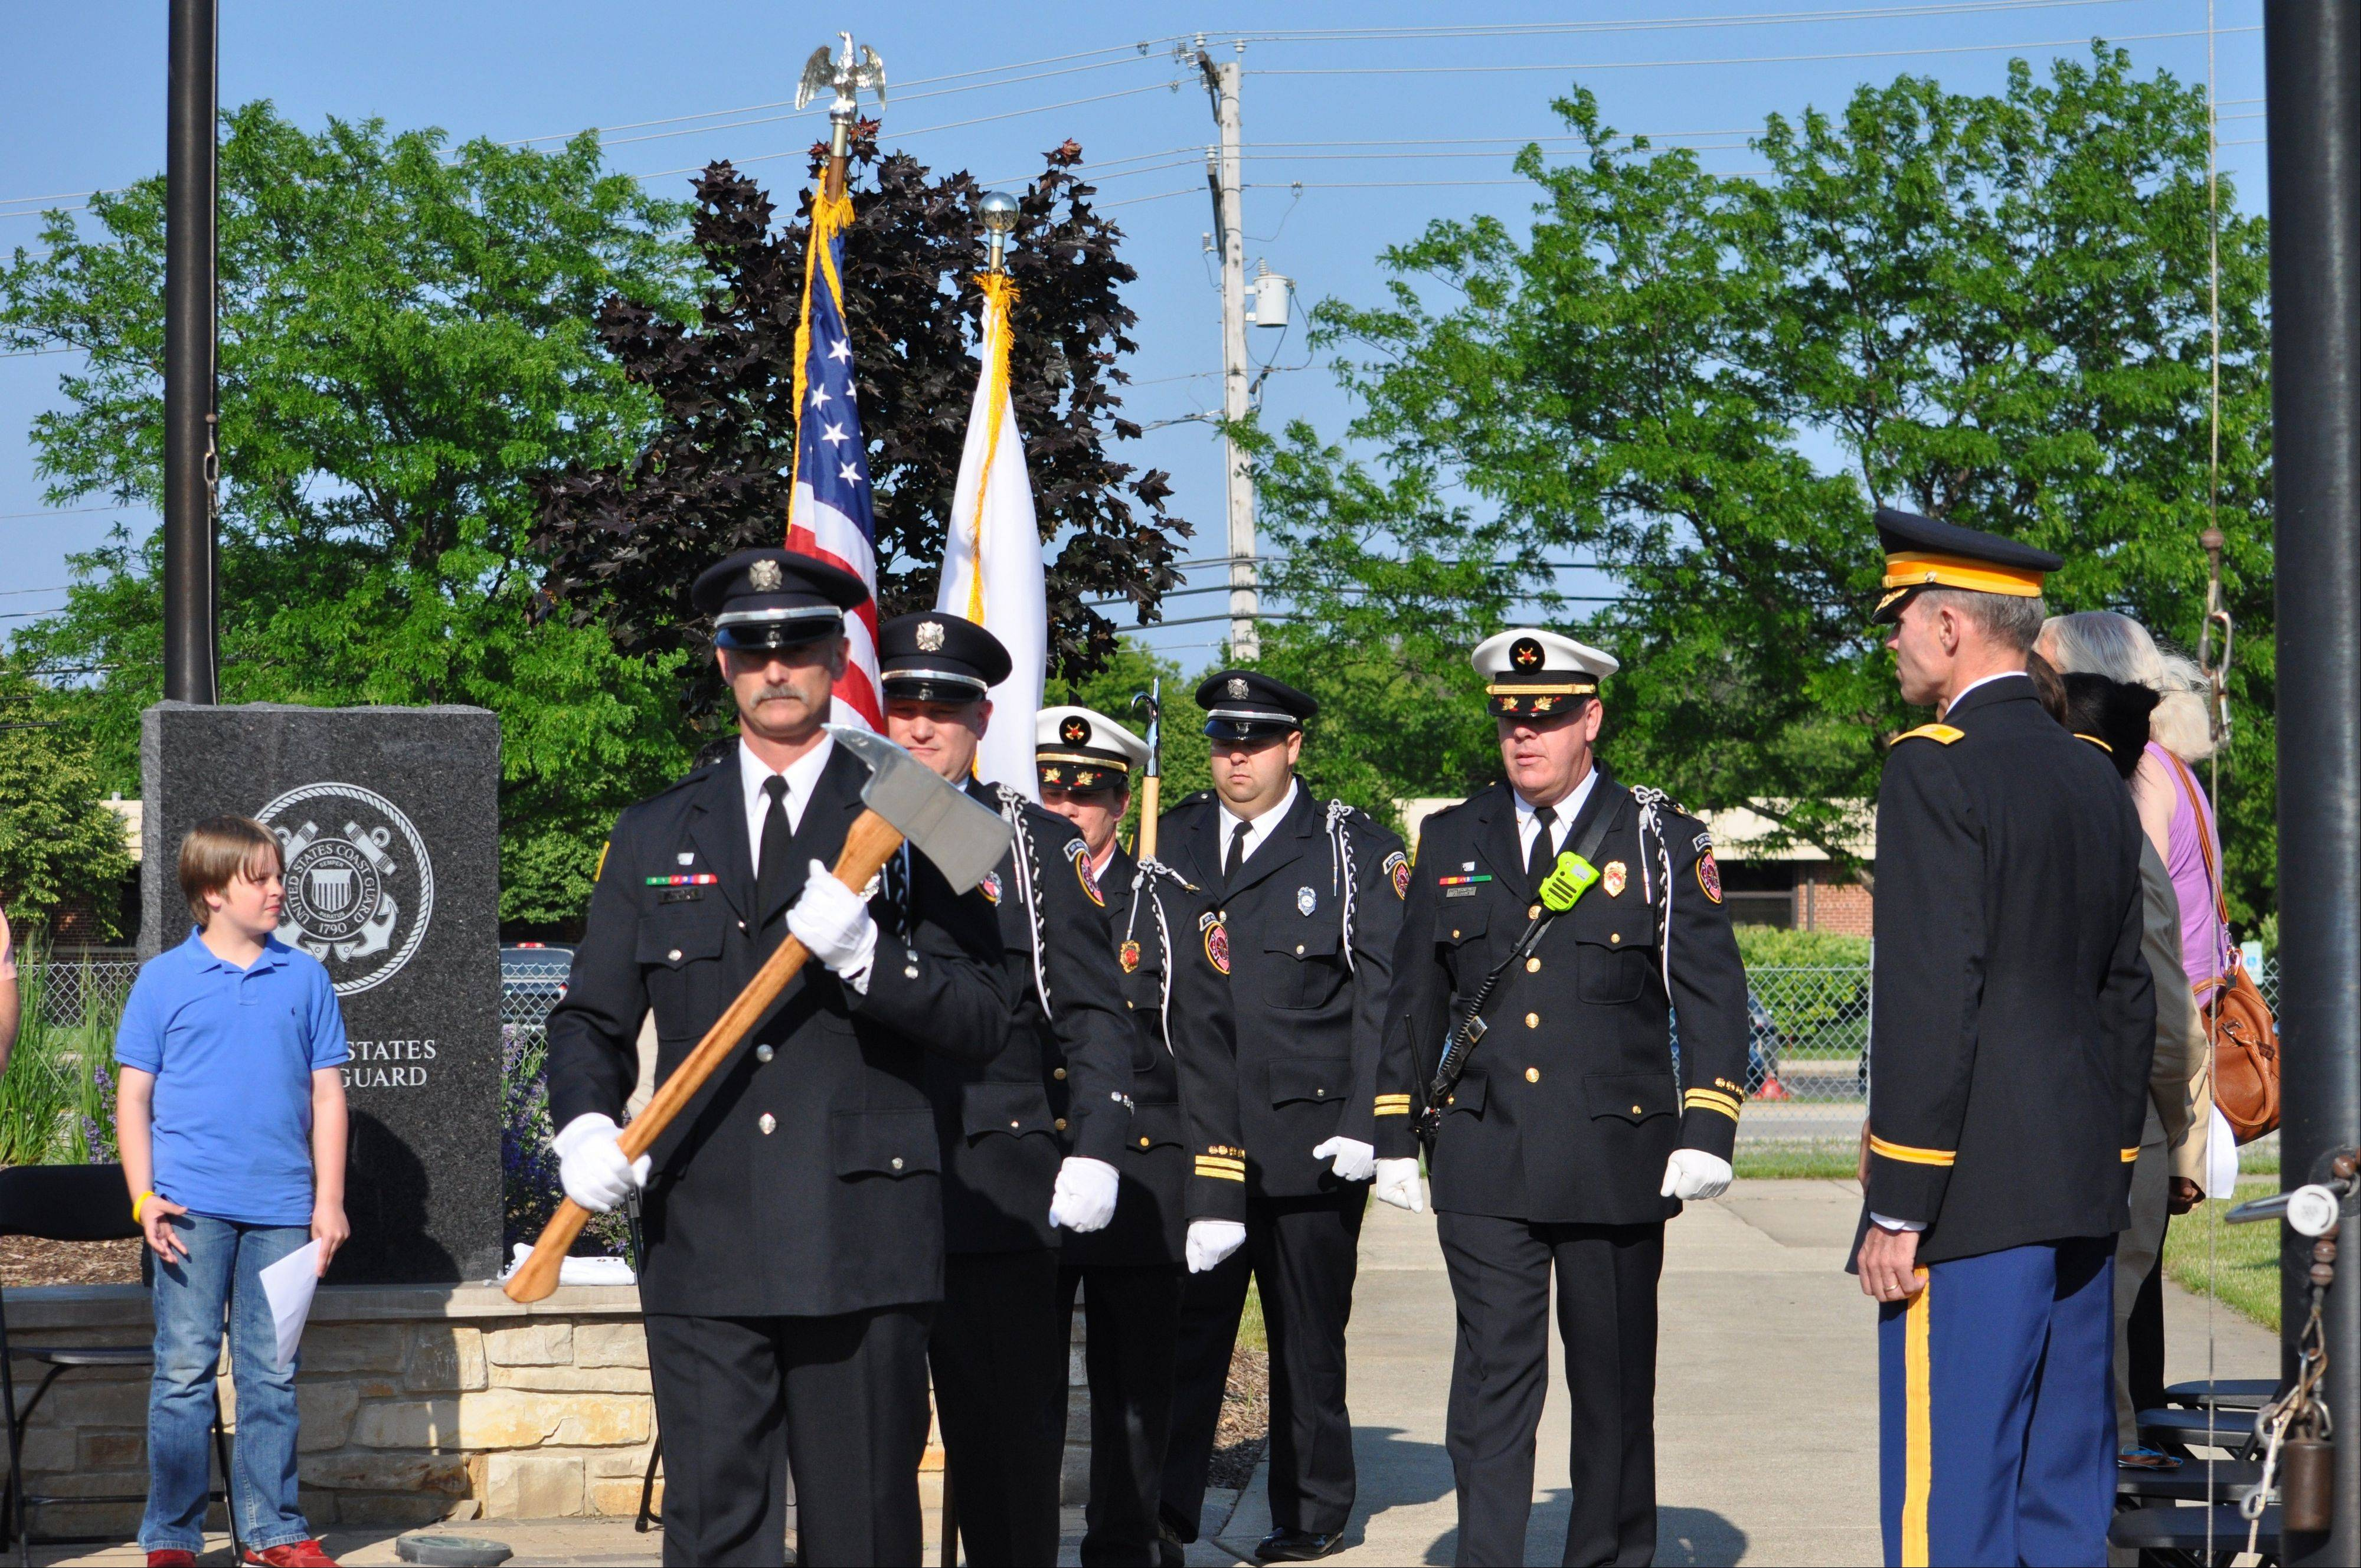 Members of the Buffalo Grove Fire Department Honor Guard participated in Flag Day ceremonies held Friday at Veterans Park, 1300 N. Weiland Road, Buffalo Grove.